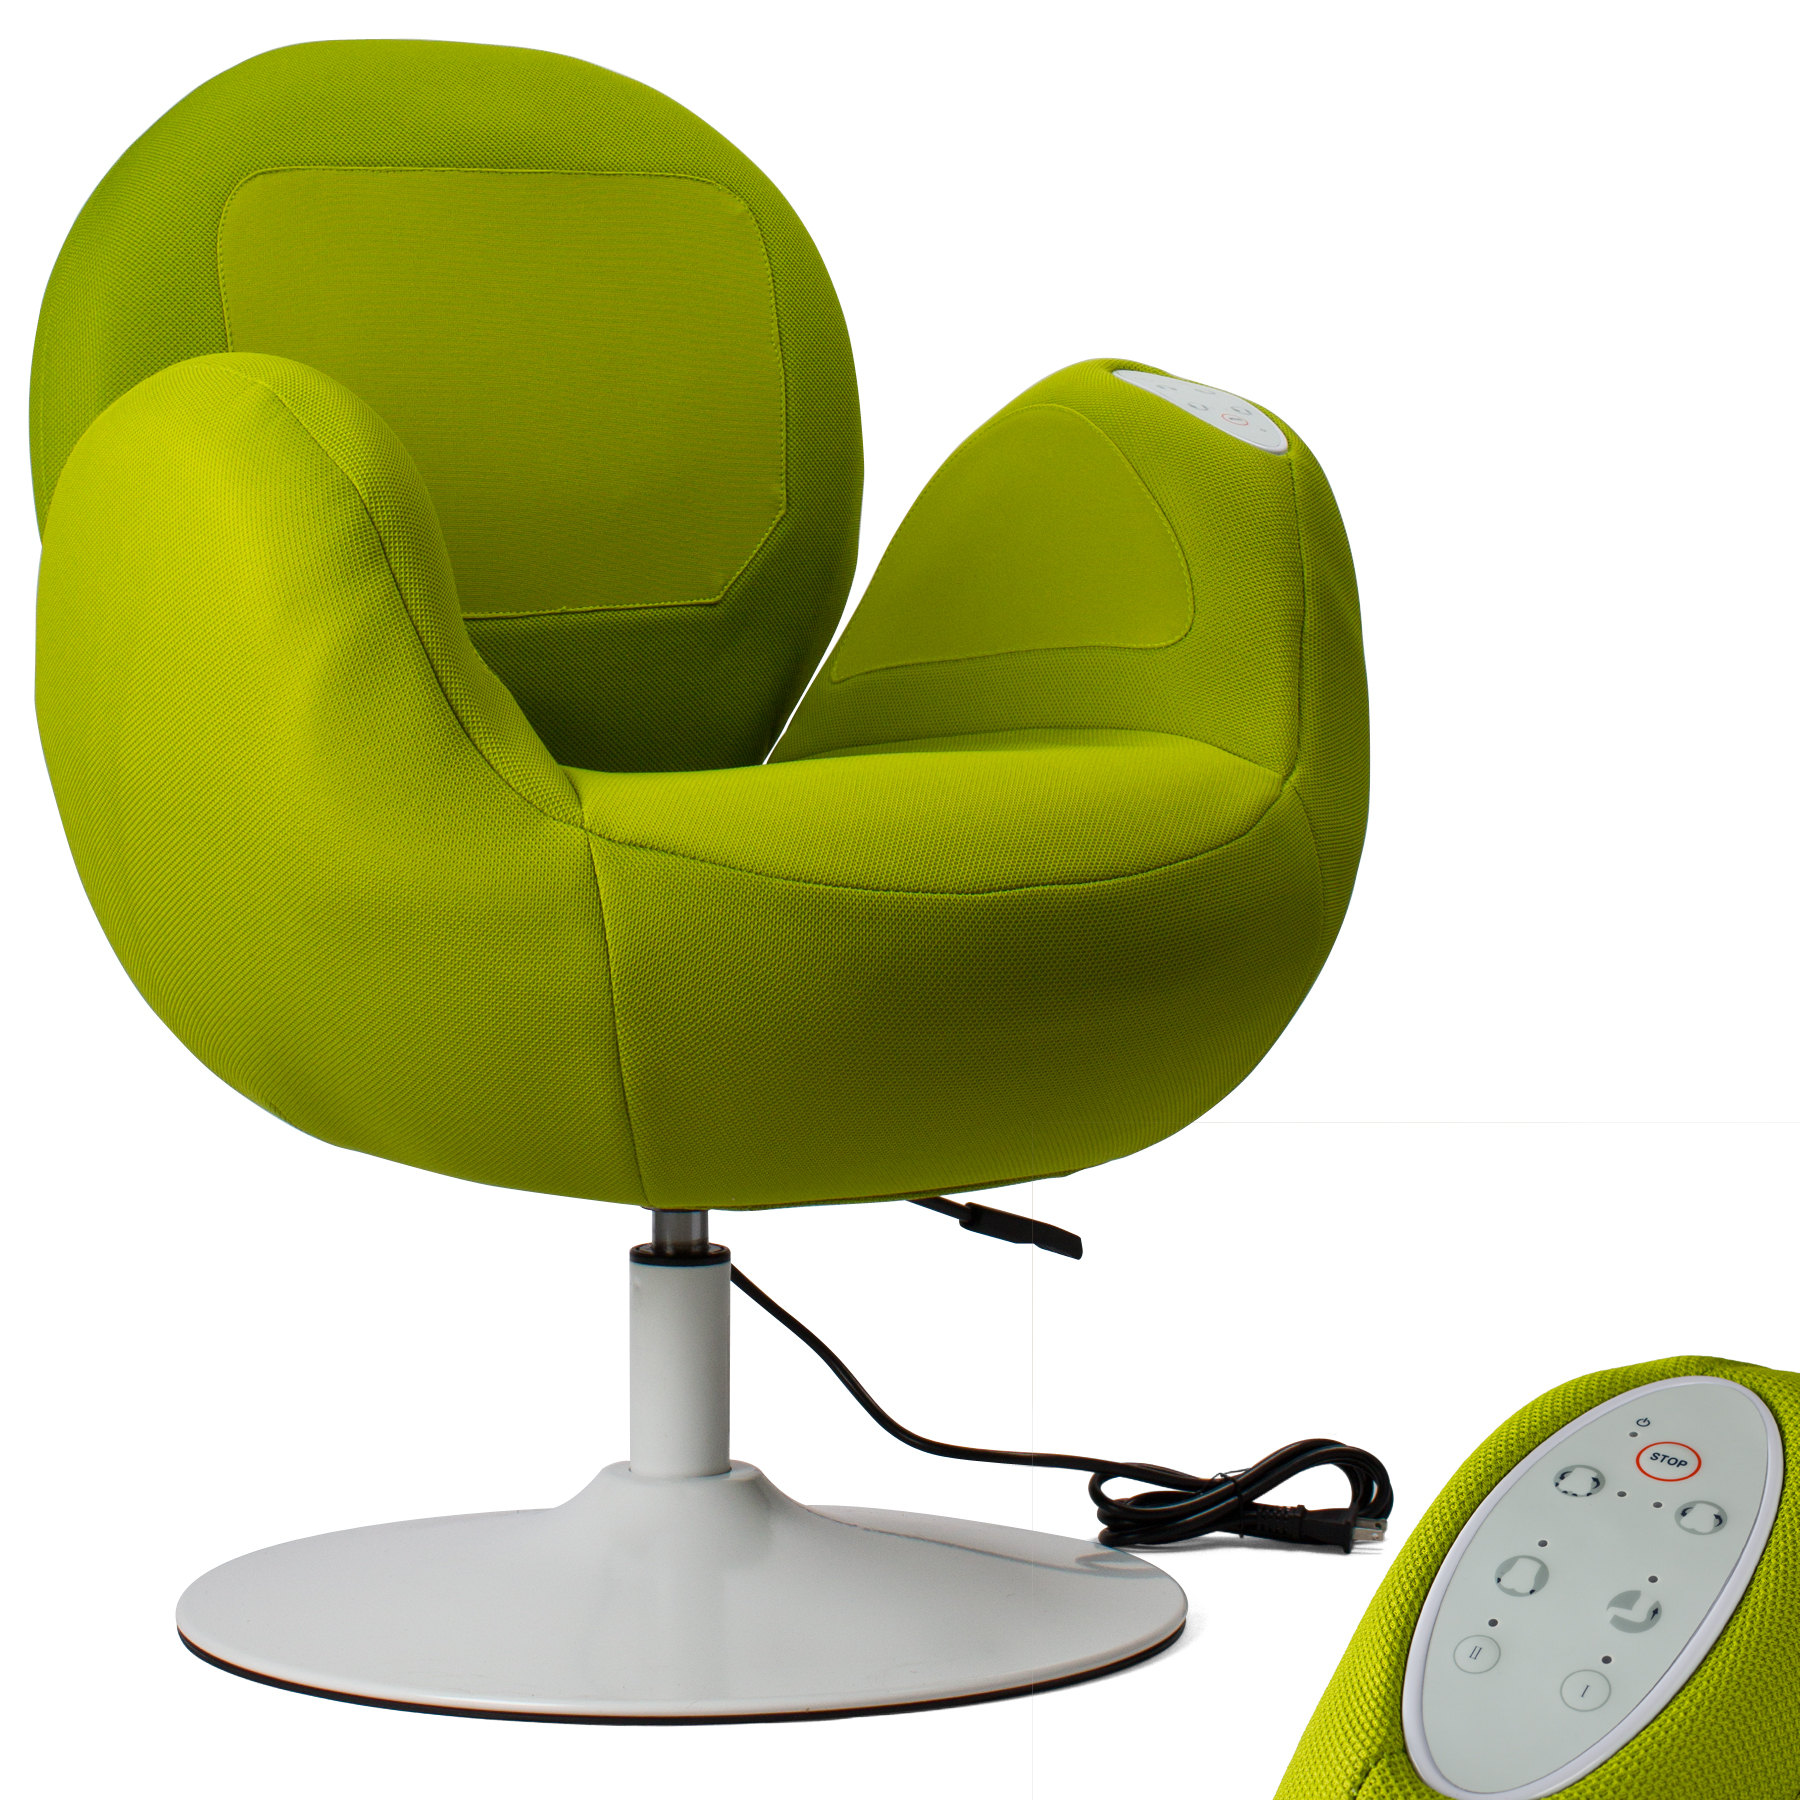 Electric Air Pressure Compression Massage Armrest Chair for Relaxation & Comfort at Home or Office - Green